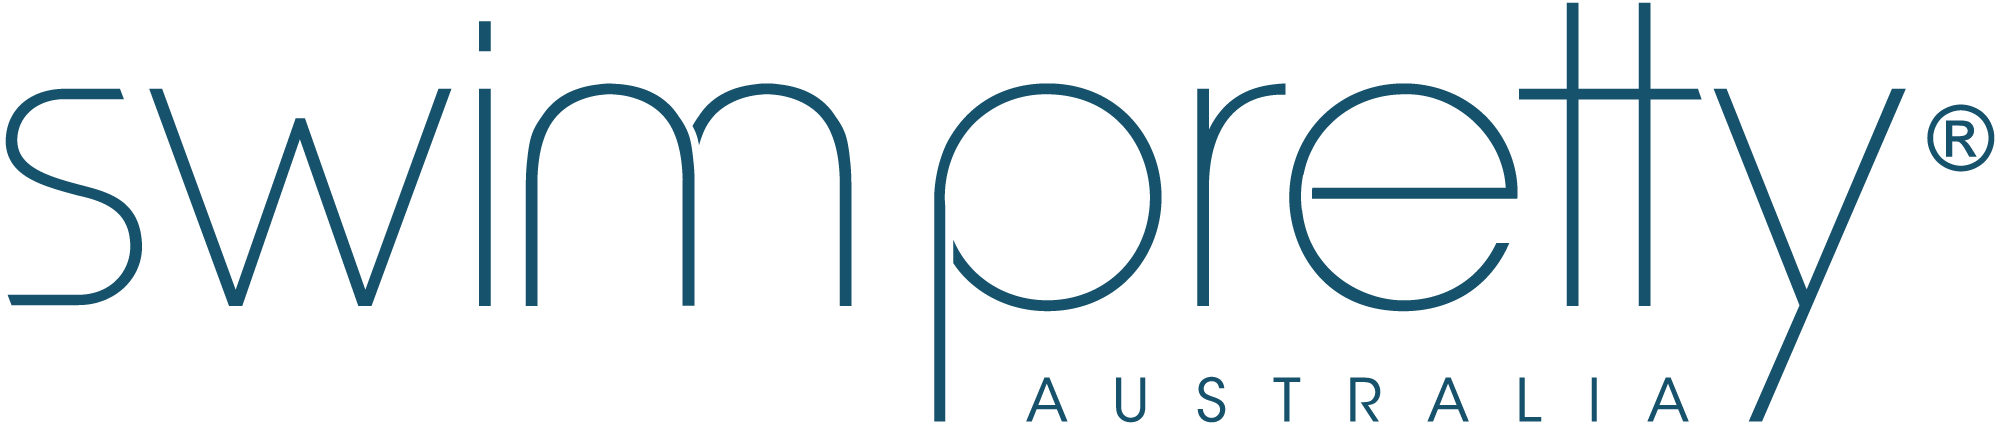 Swim Pretty Australia logo